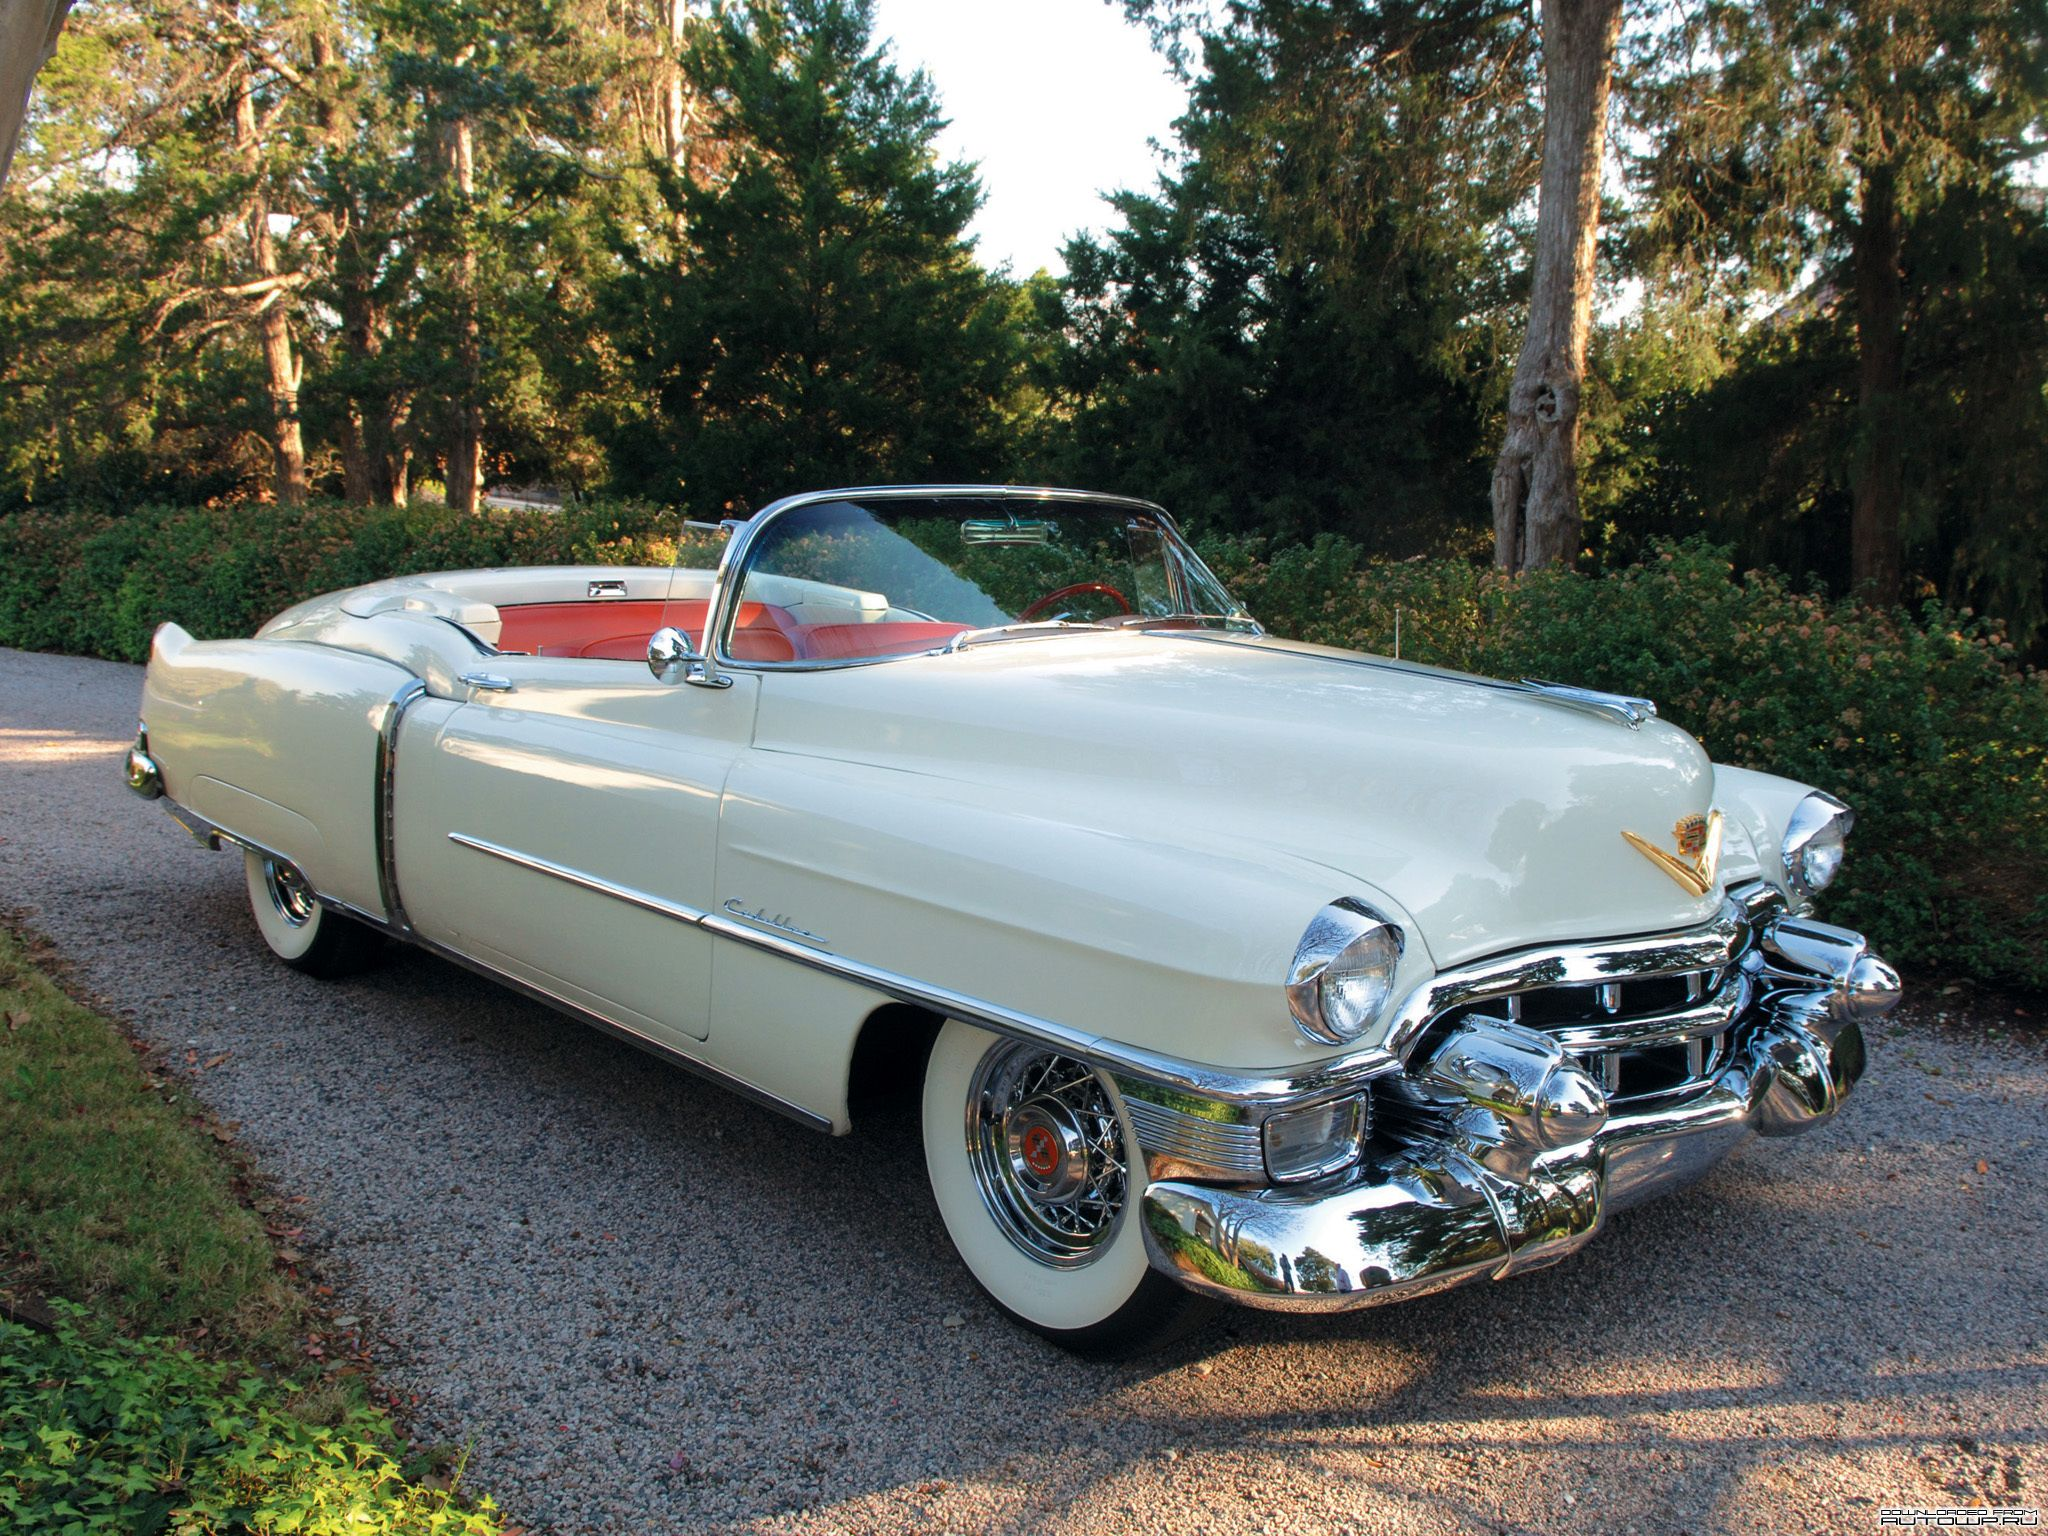 1953 cadillac eldorado convertible brought to you by house of insurance